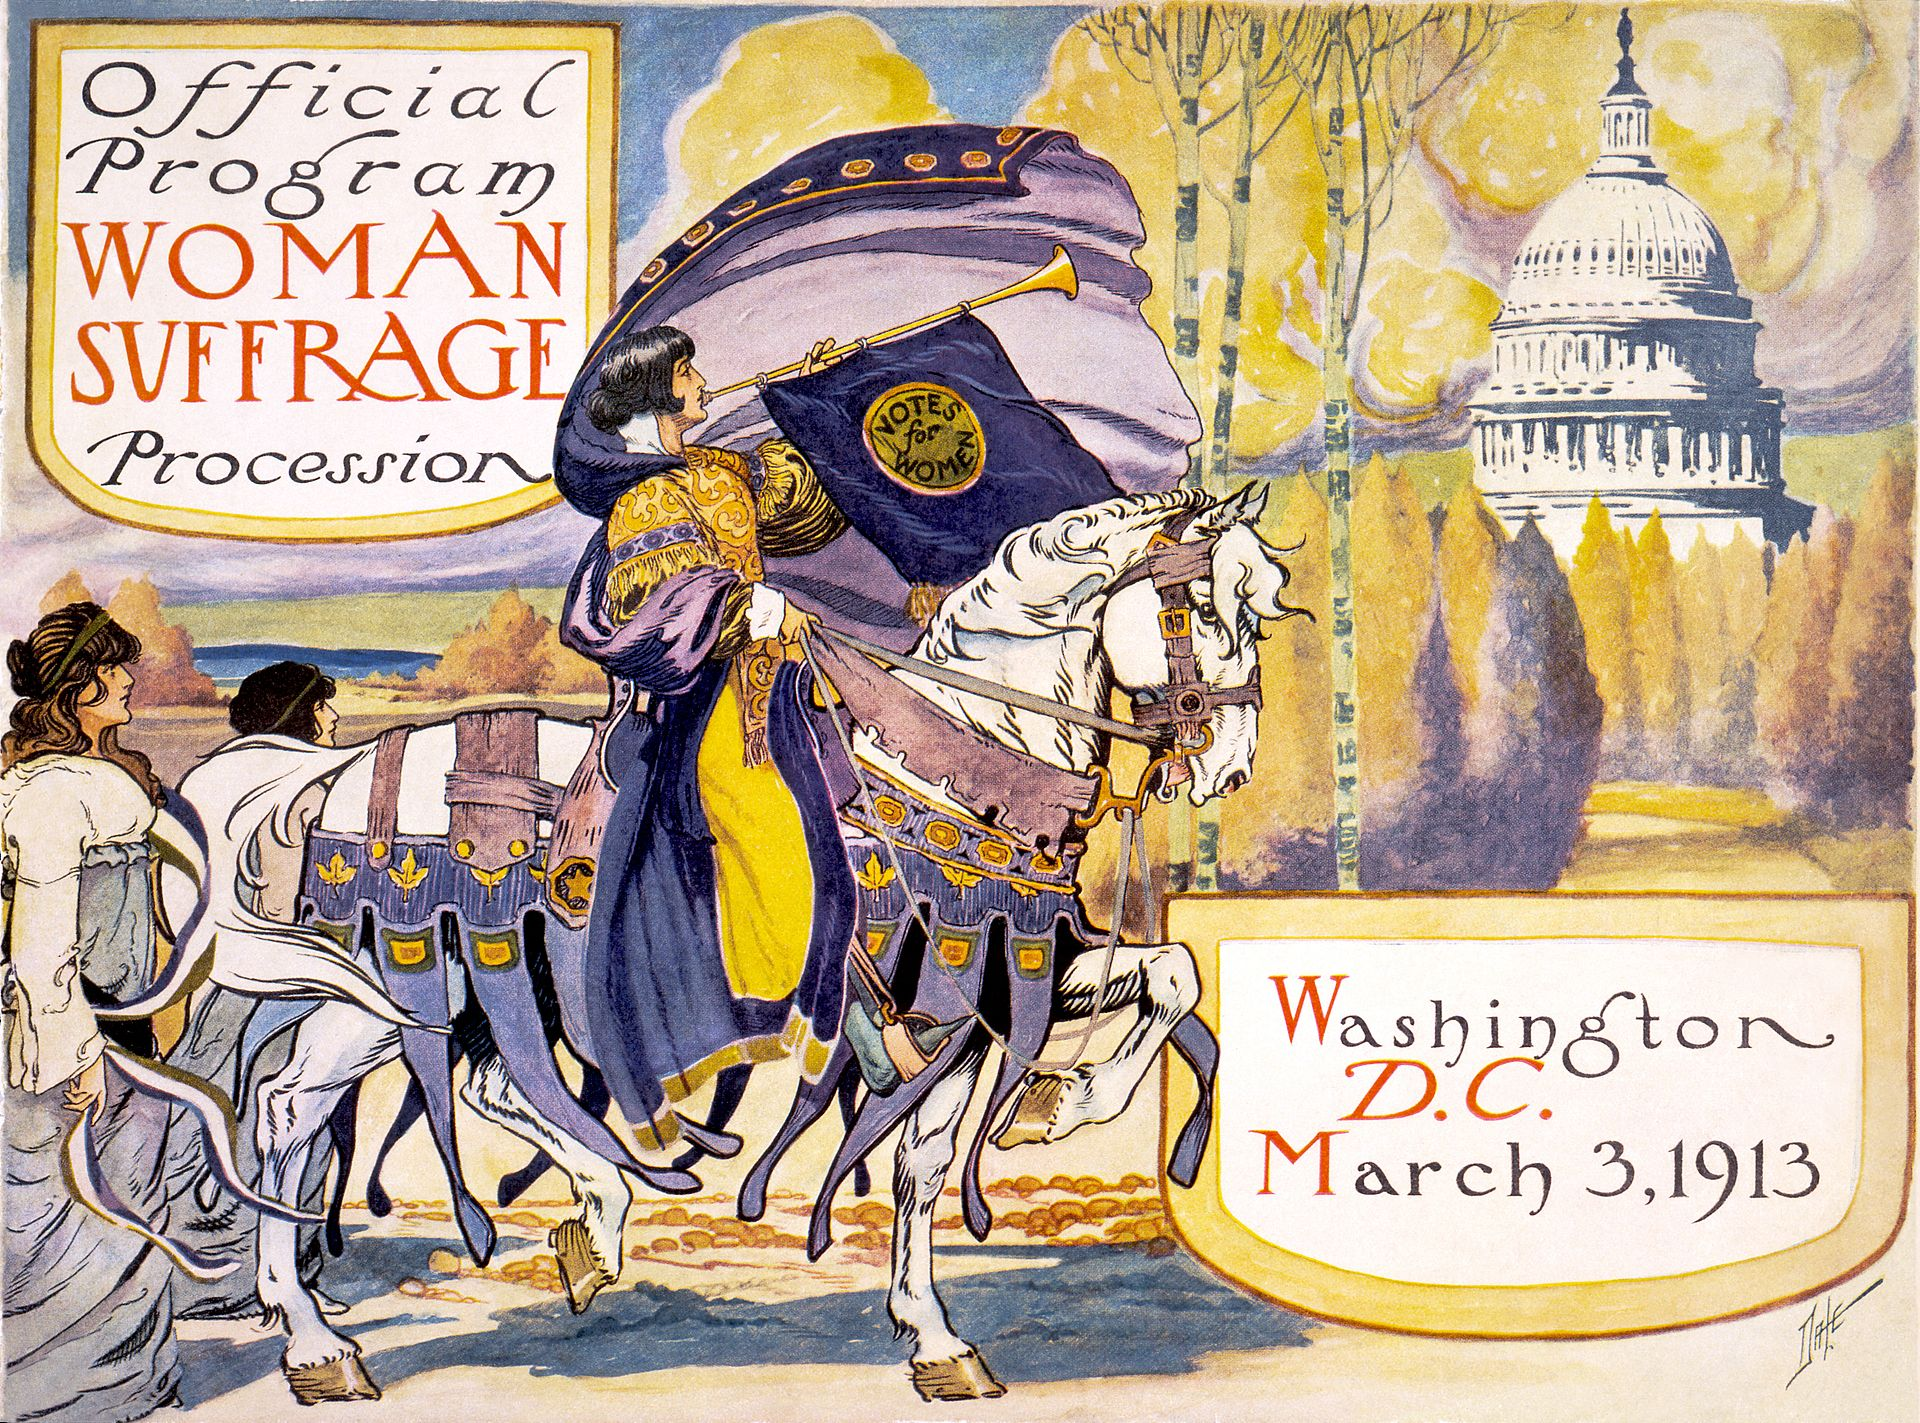 Official Program of the 1920s Washington DC Woman Suffrage procession